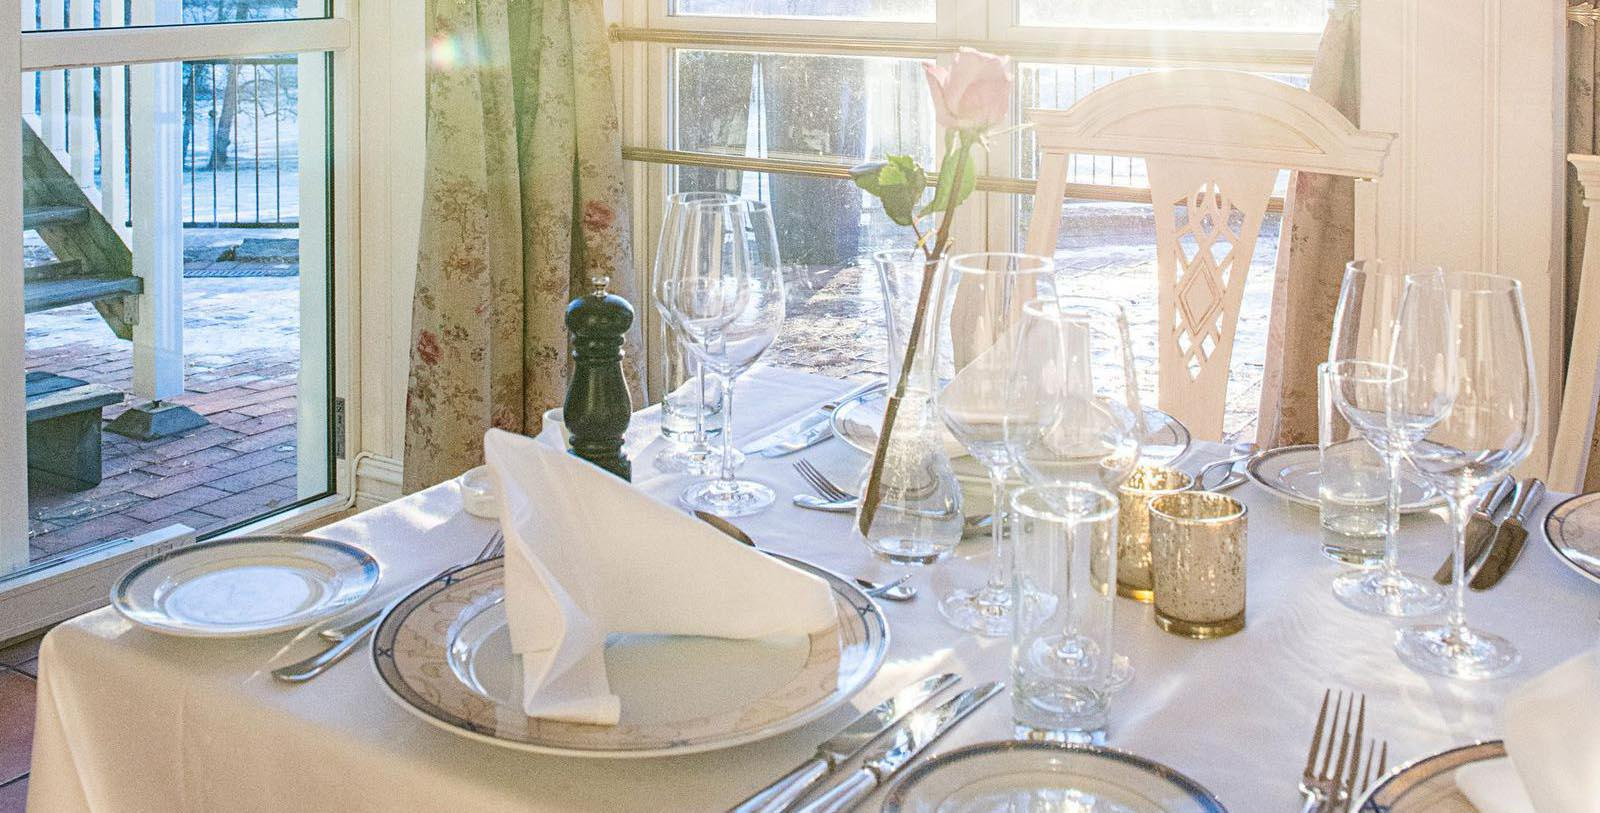 Image of Place Setting Losby Gods, 1744, Member of Historic Hotels Worldwide, in Finstadjordet, Norway, Hot Deals